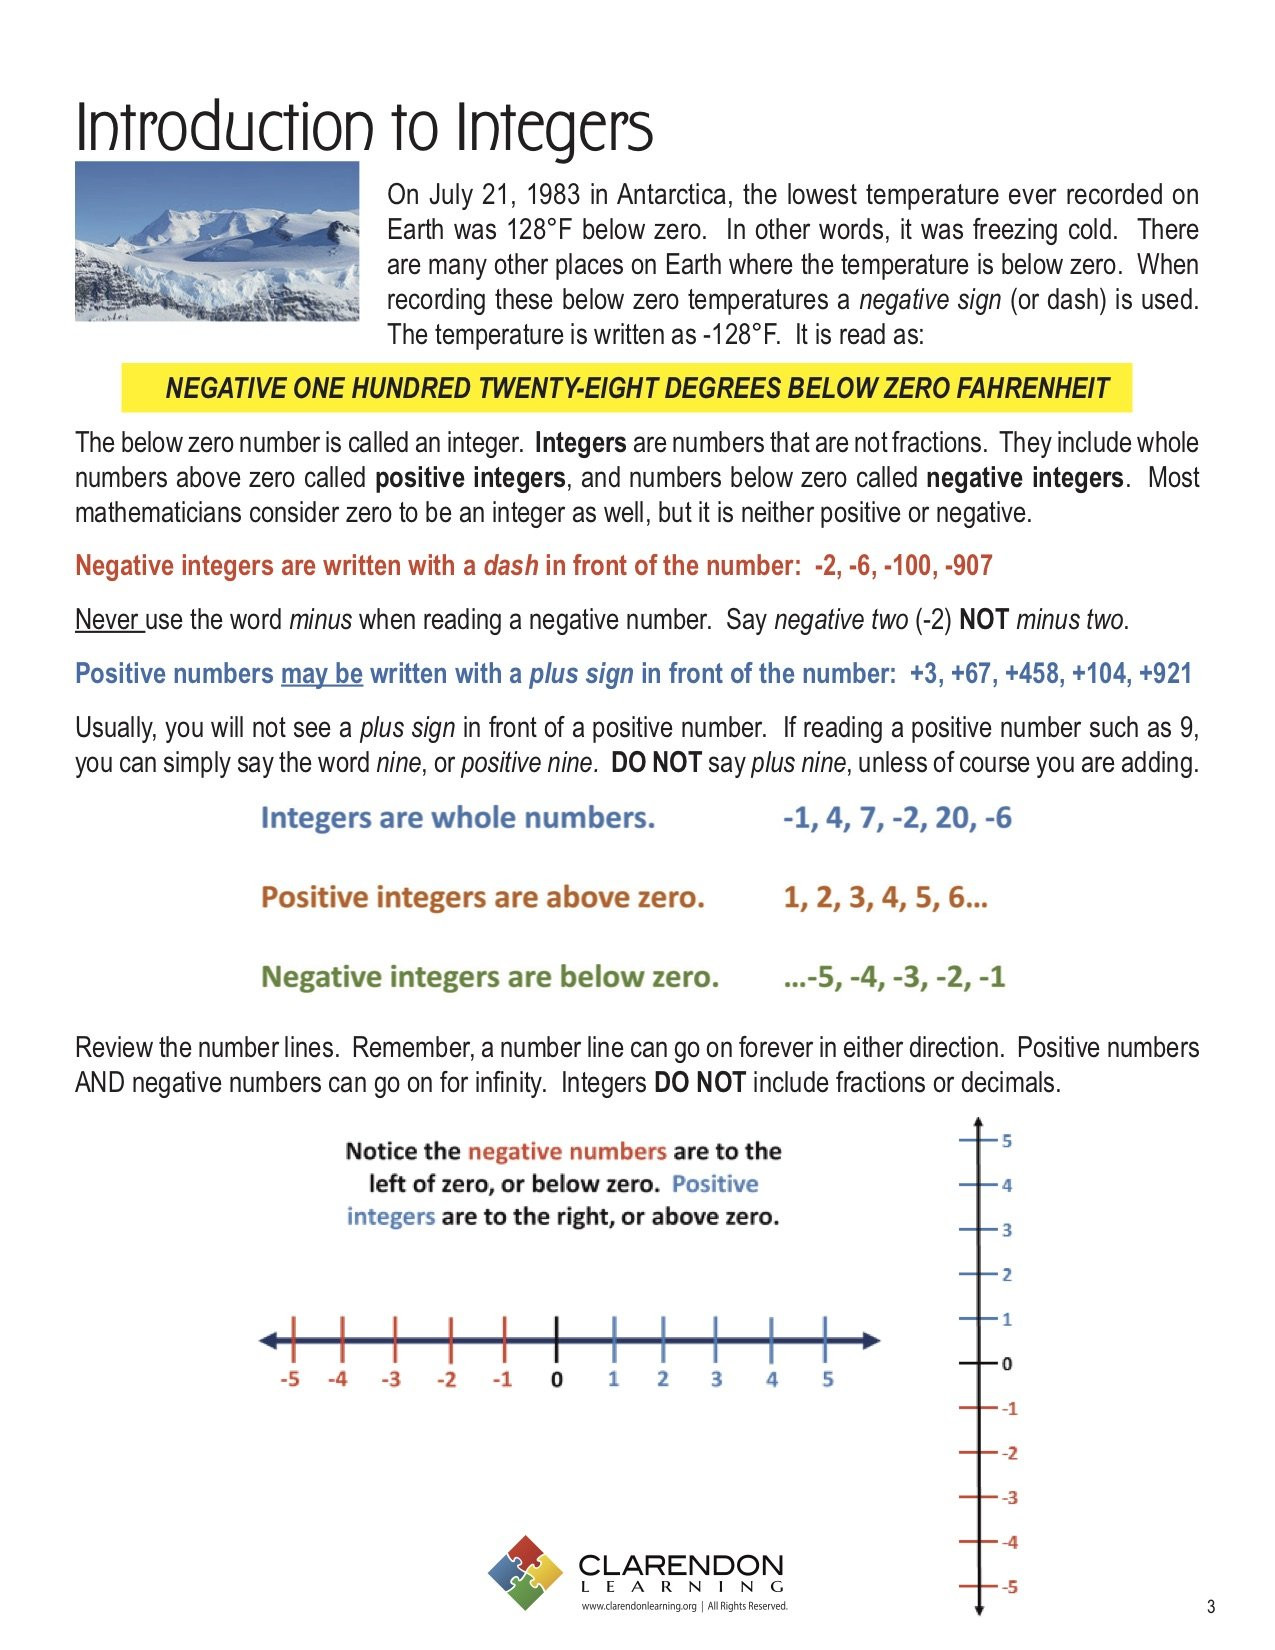 Introduction to Integers Lesson Plan